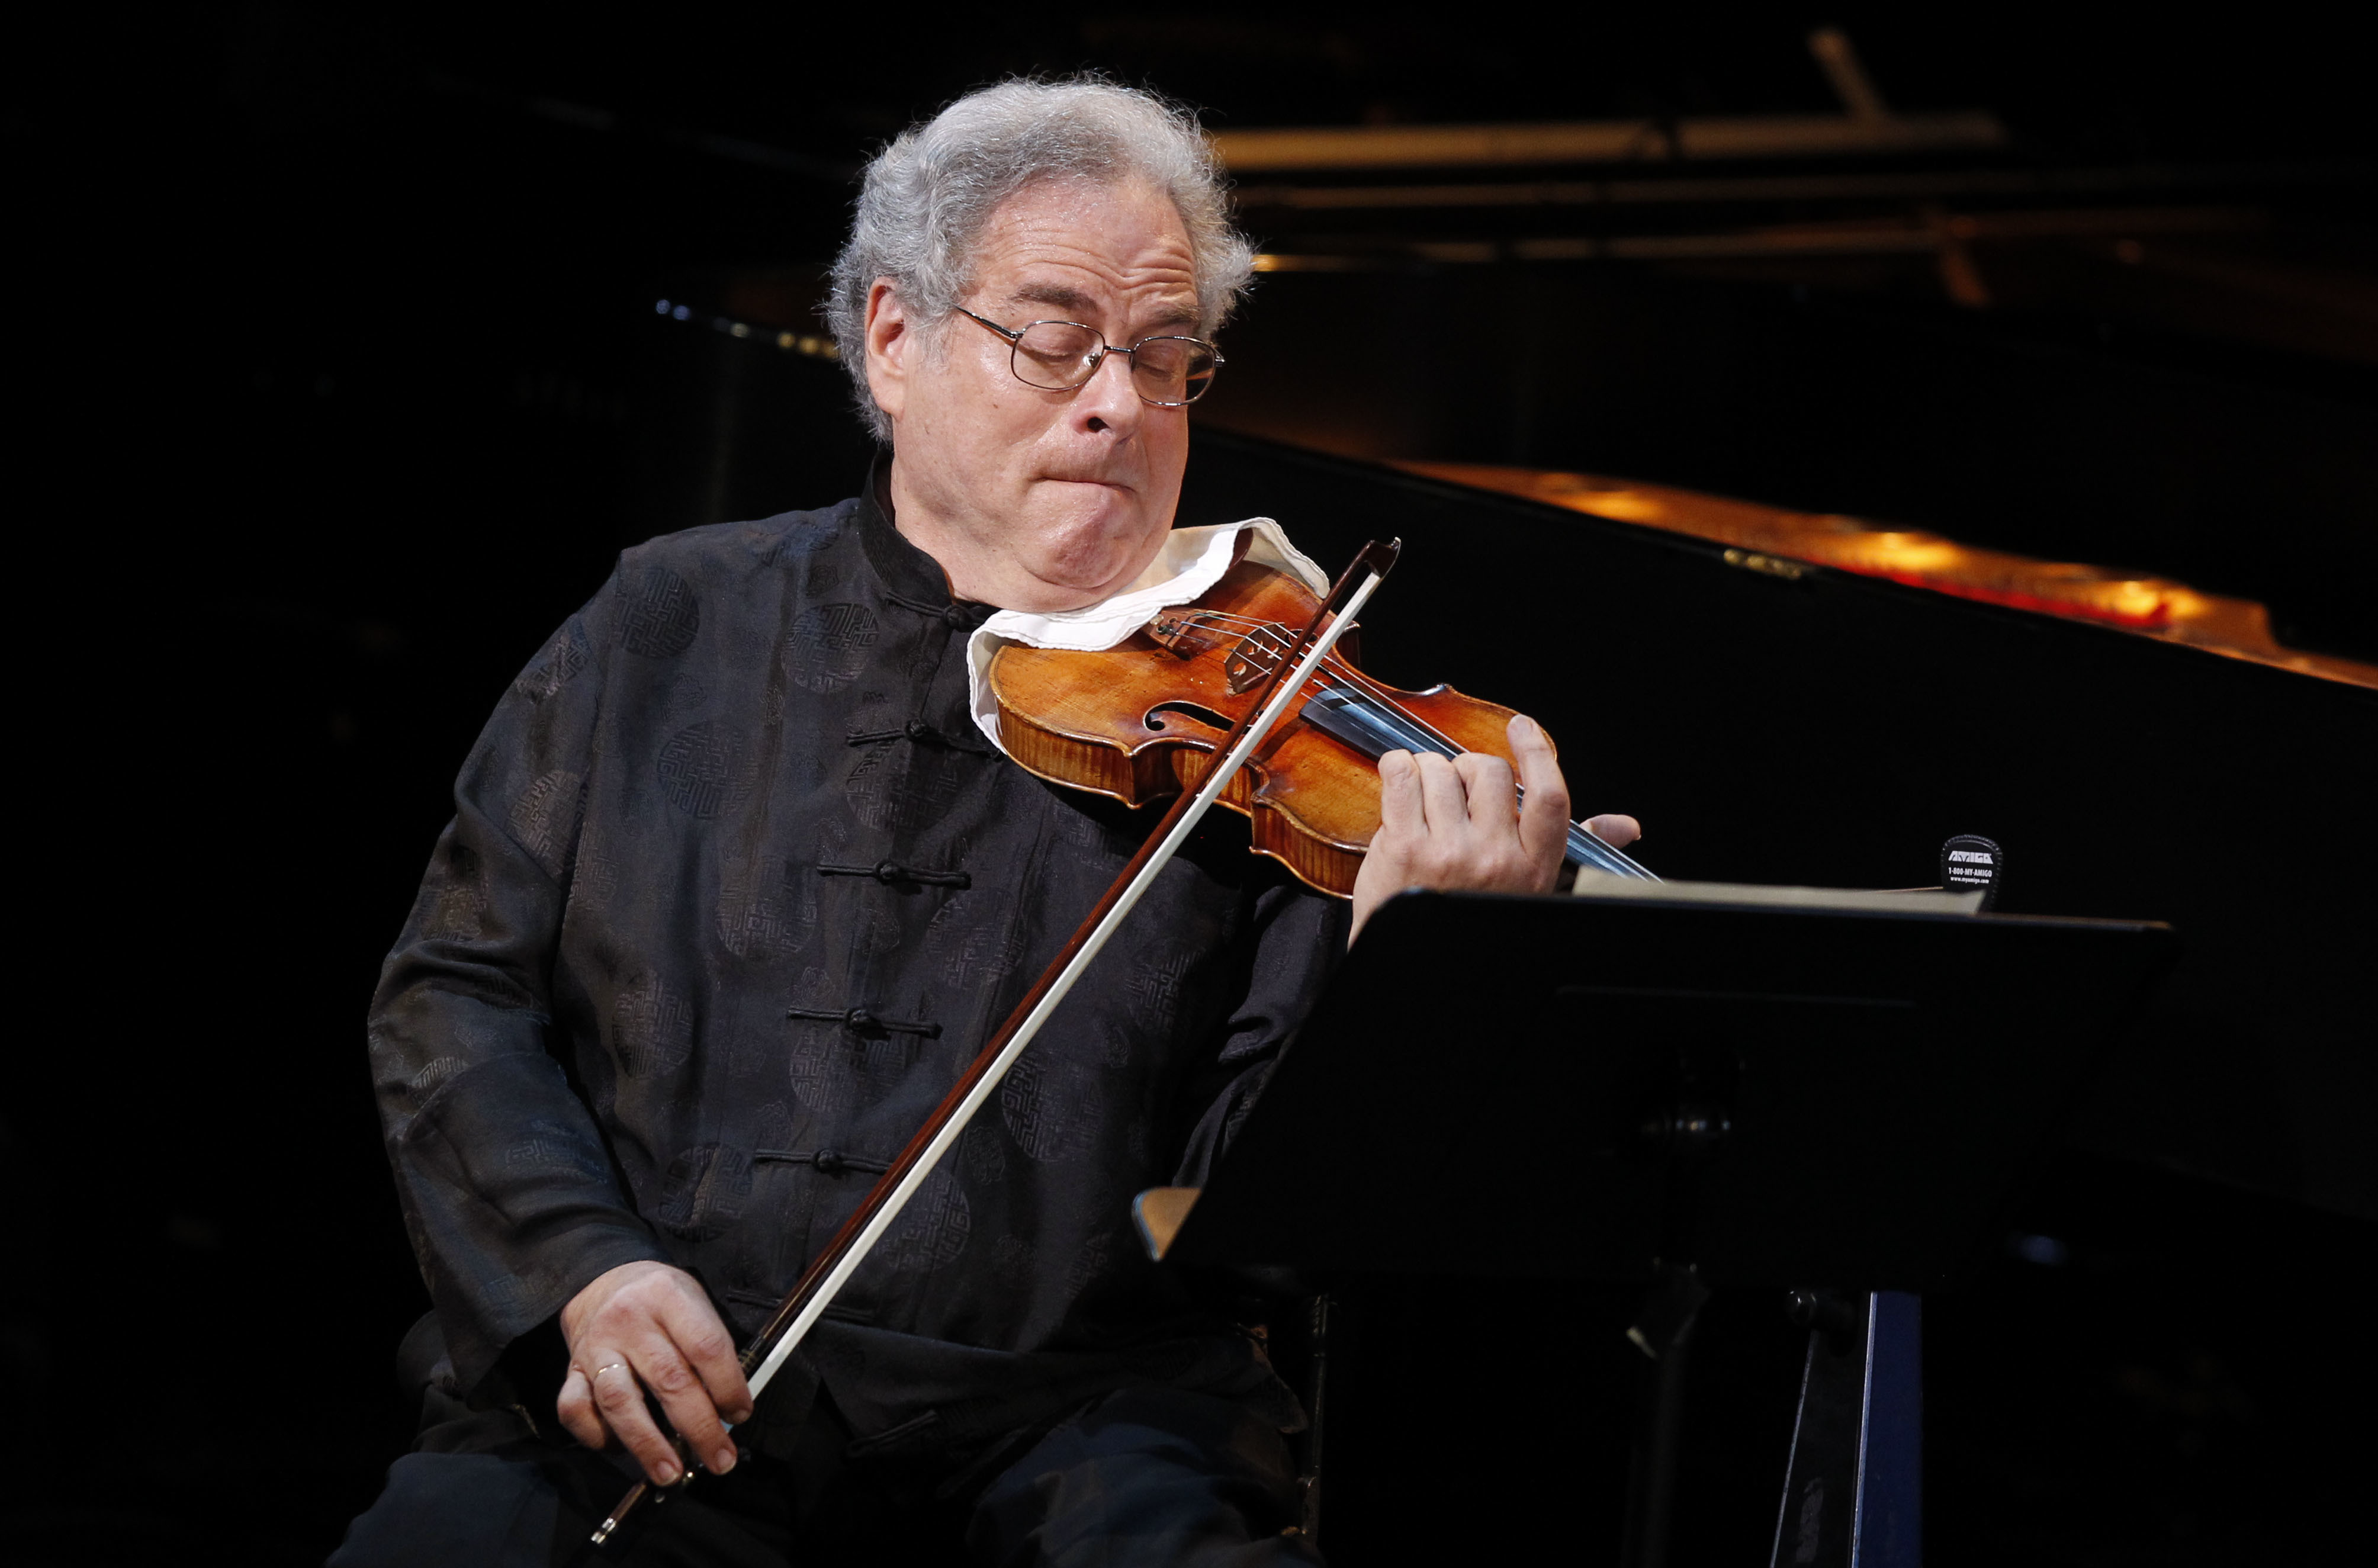 Itzhak Perlman performs during A Tribute to Marvin Hamlisch, a memorial concert, at the Juilliard School's Peter Jay Sharp Theater, Sept. 18, 2012 in New York. Perlman will perform Beethoven's Violin Concerto at Brigham Young University on Jan. 9, 2020.